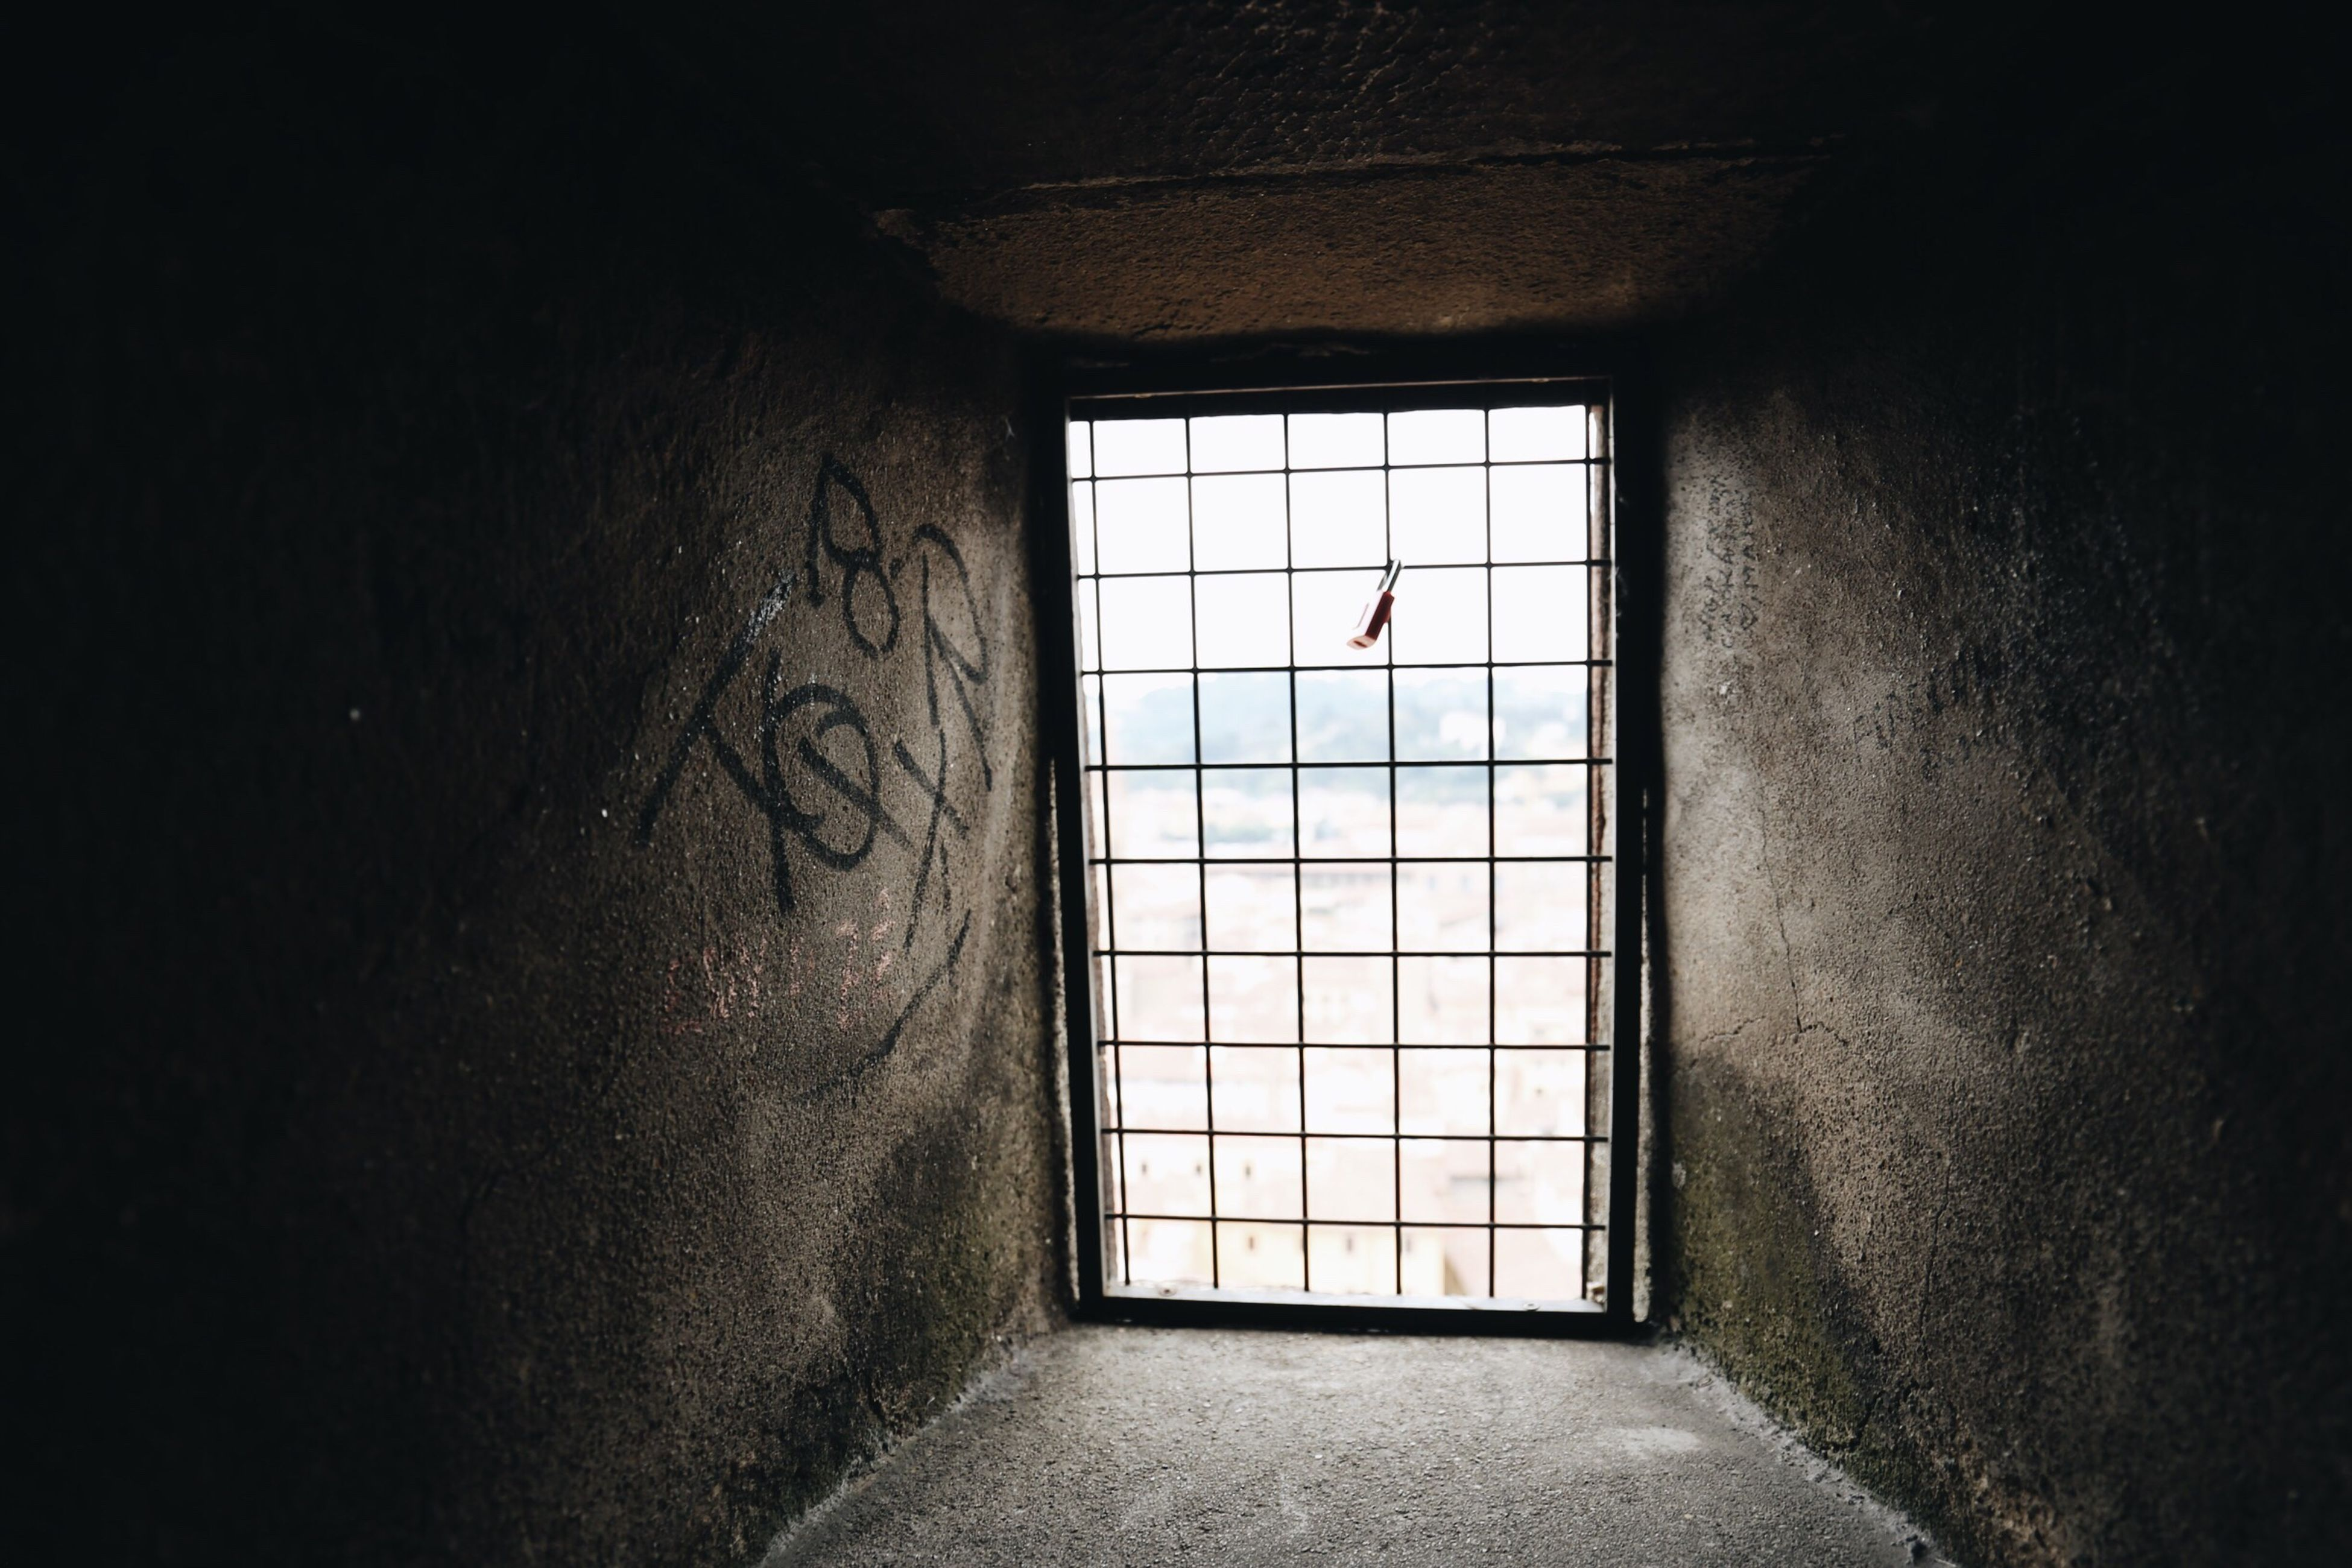 indoors, window, wall - building feature, day, no people, window frame, diminishing perspective